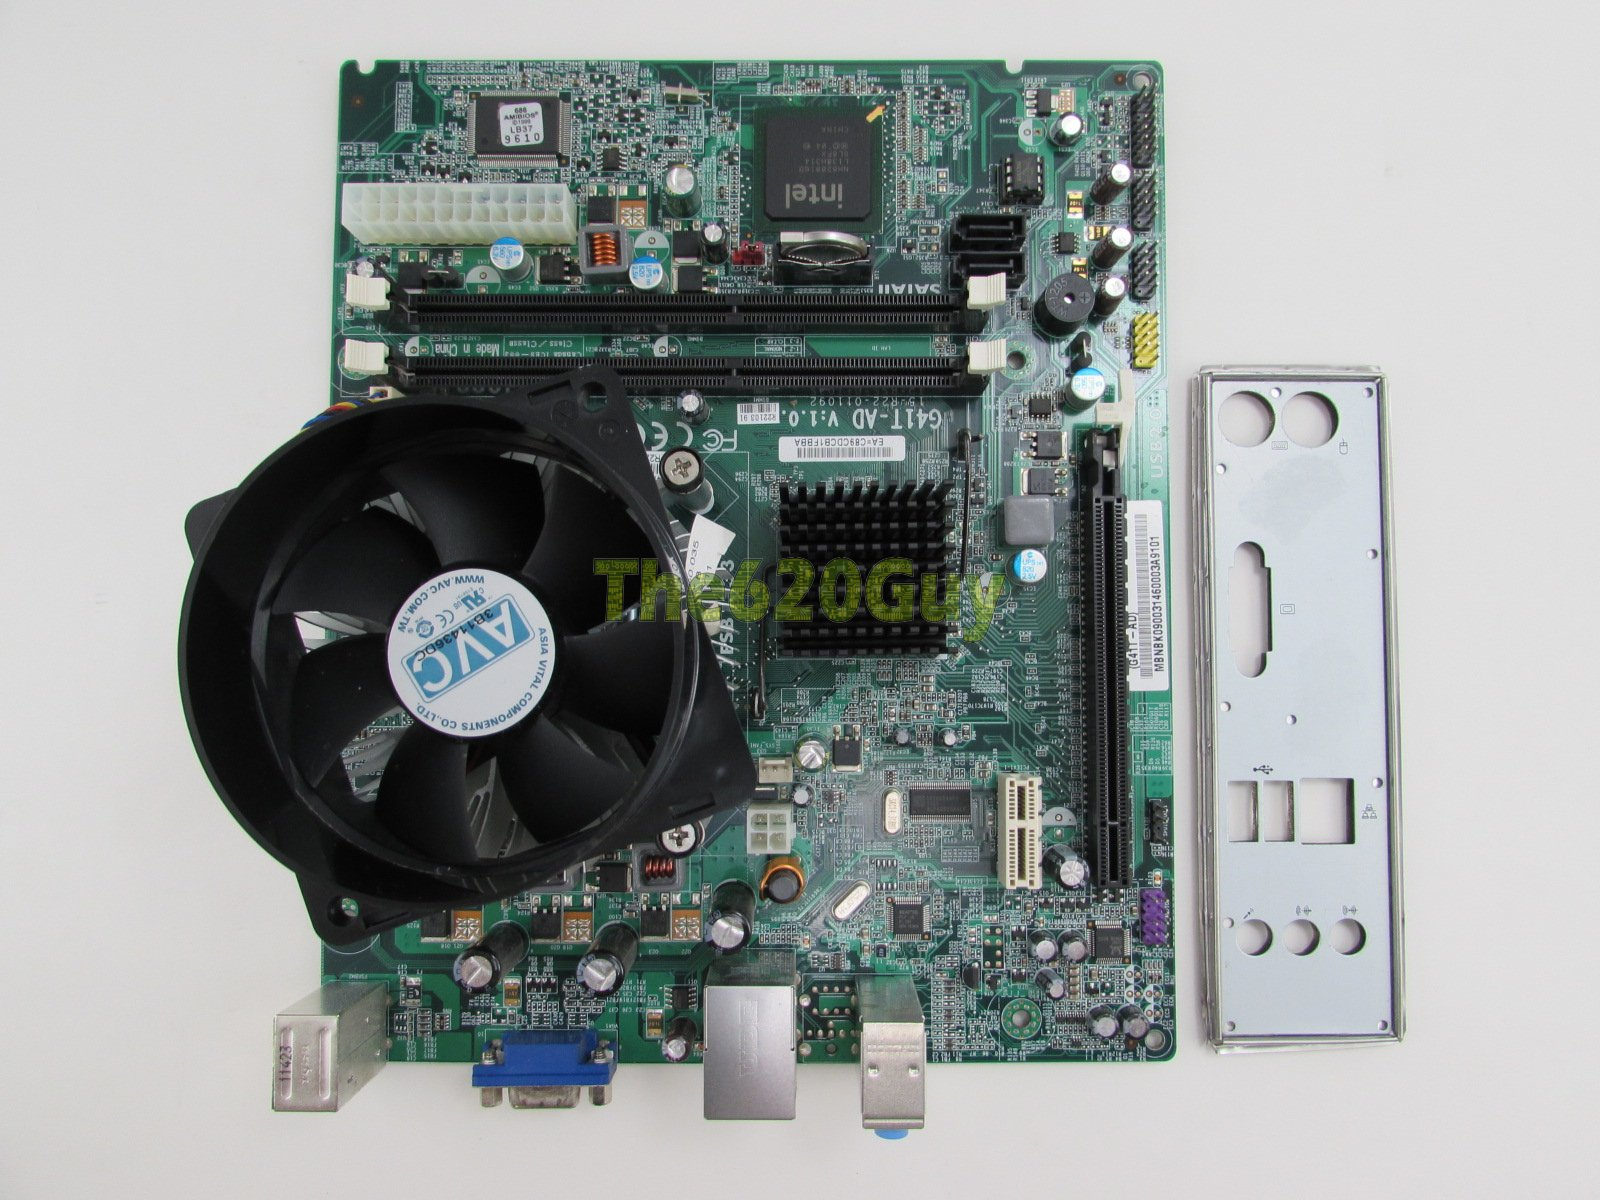 Acer mcp73 Motherboard manual